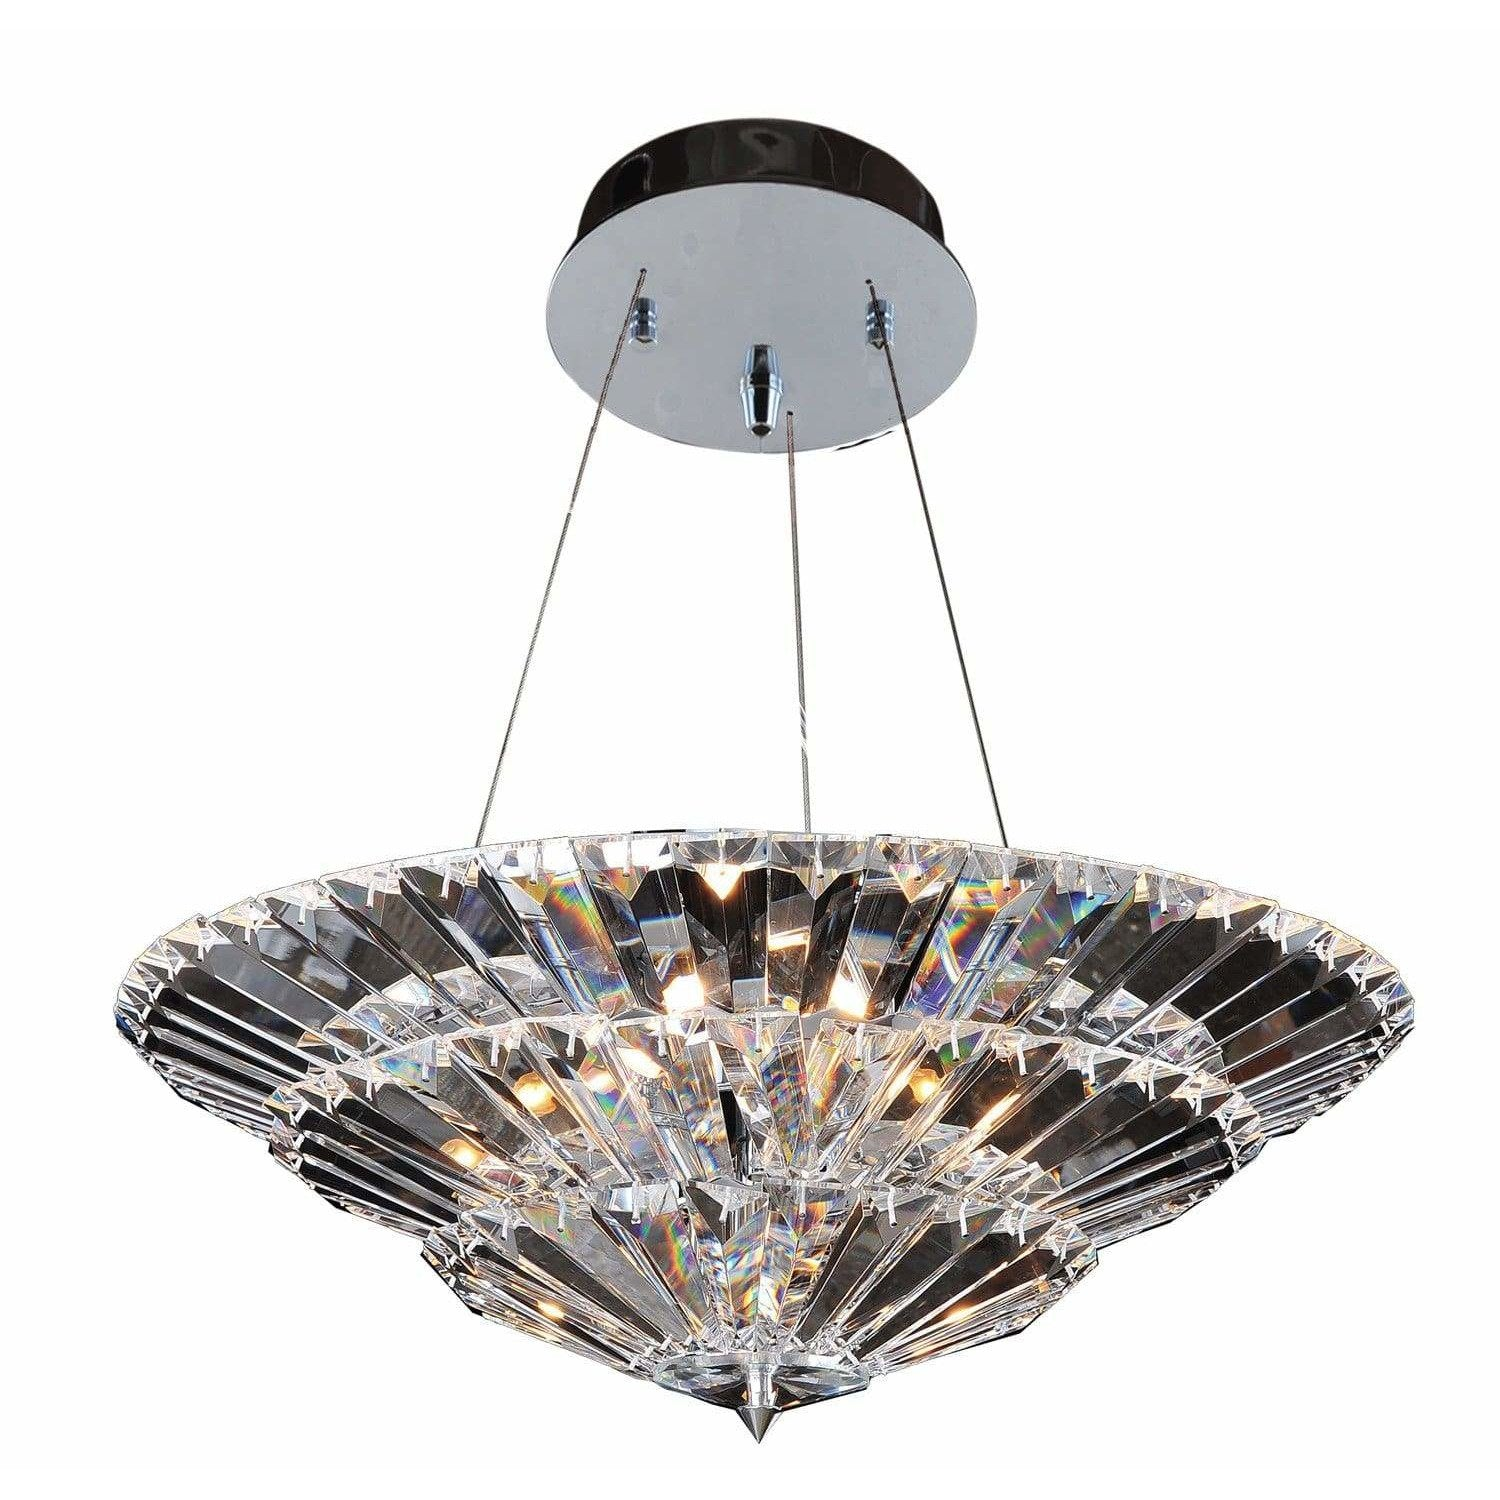 Allegri by Kalco Lighting Dual Mounts Chrome / Firenze Clear Auletta 24 Inch Convertible Pendant - Semi Flush Mount From Allegri by Kalco Lighting 11426